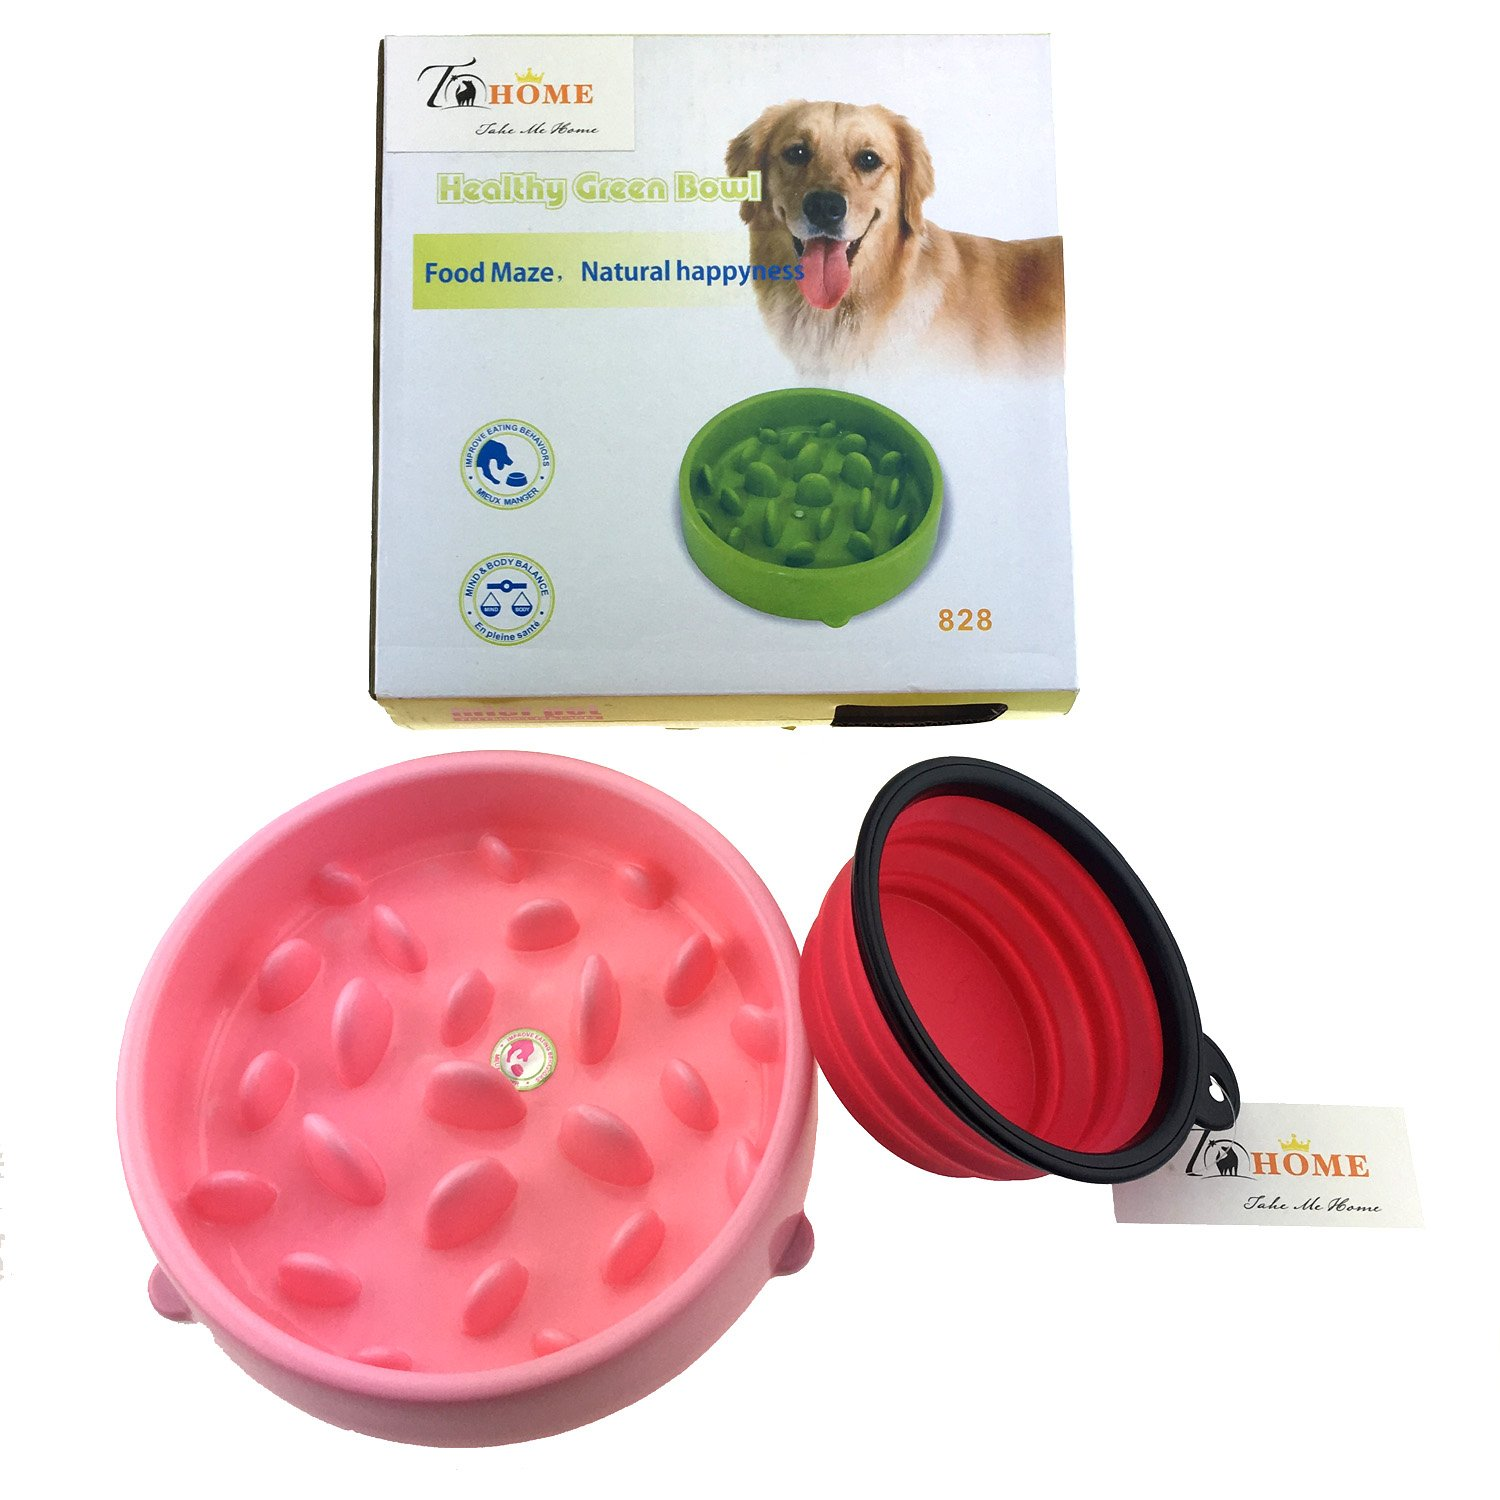 Aduck Slow Feed Dog Bowl, Anti-gulping Pet Food Feeder Stopping Bloat from Eating too Fast, Portable FDA Silicone Travel Bowl Includes, Pink